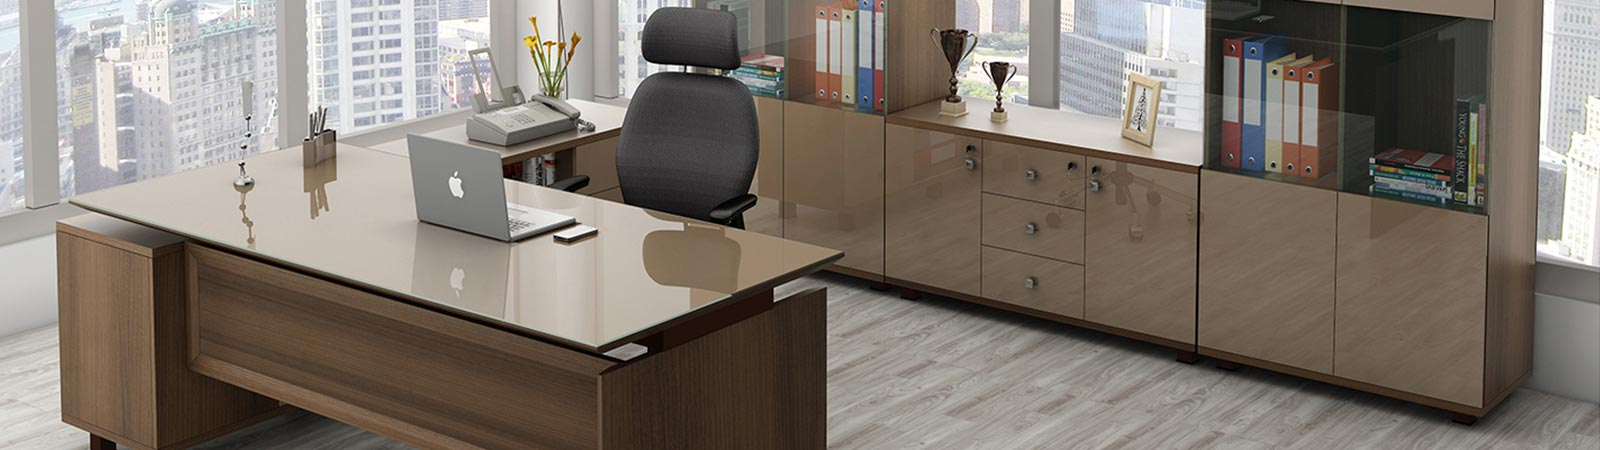 Affordable Office Tables, Reception Tables, Delhi NCR, India